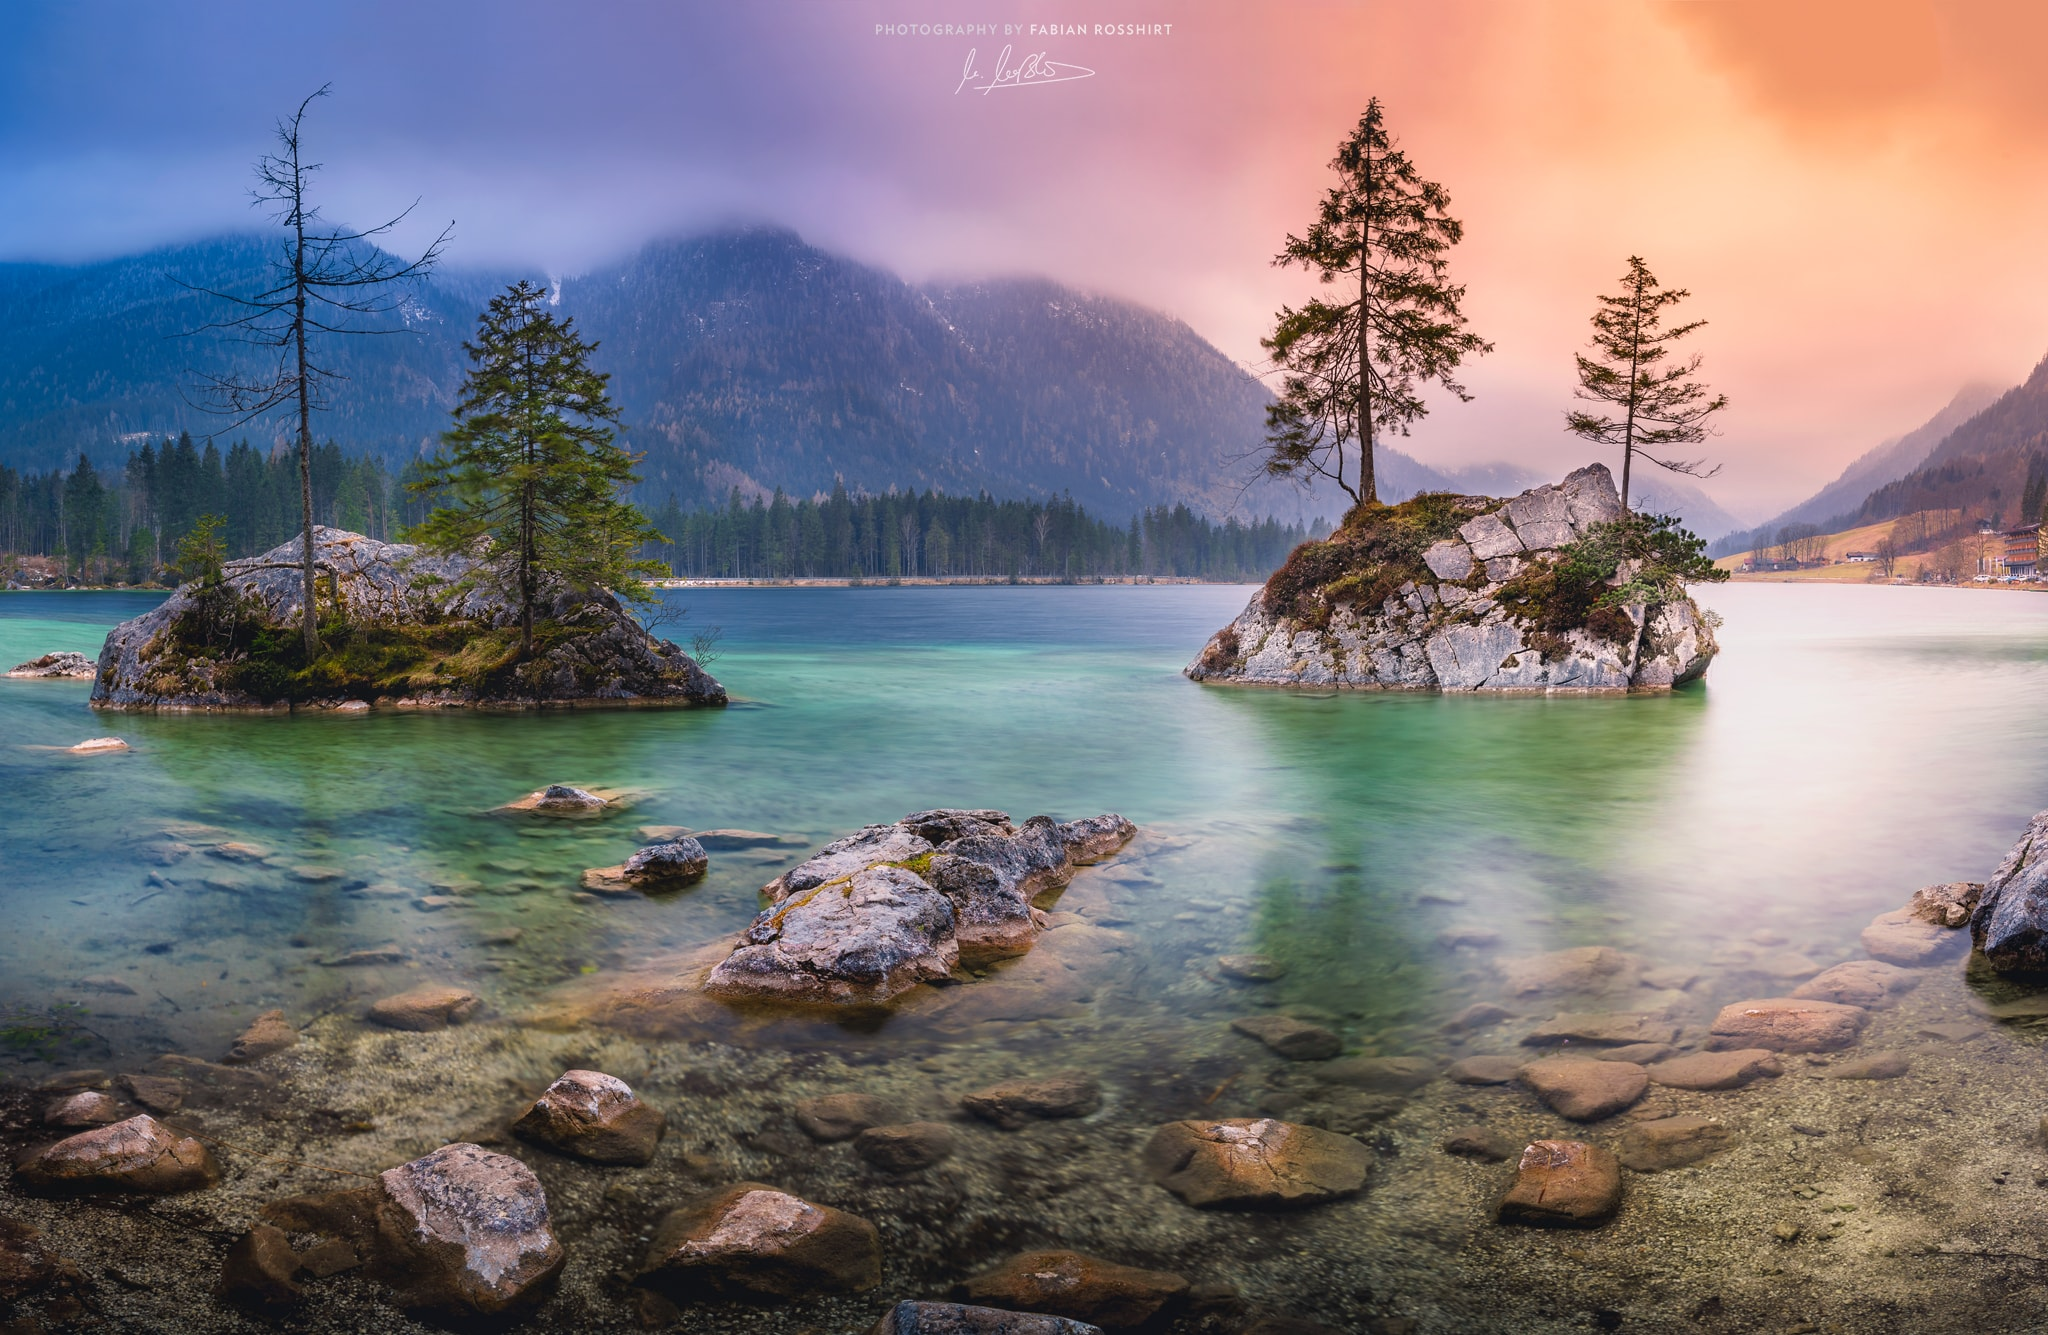 Hintersee, See, Gebirge, Klar, Wasser, Berge, Wolken, Lake, Clouds, Mountains, Bavaria, ALPINE TREASURE (Berchtesgaden Wallpaper HD Bilder Hintergrundbild Background)